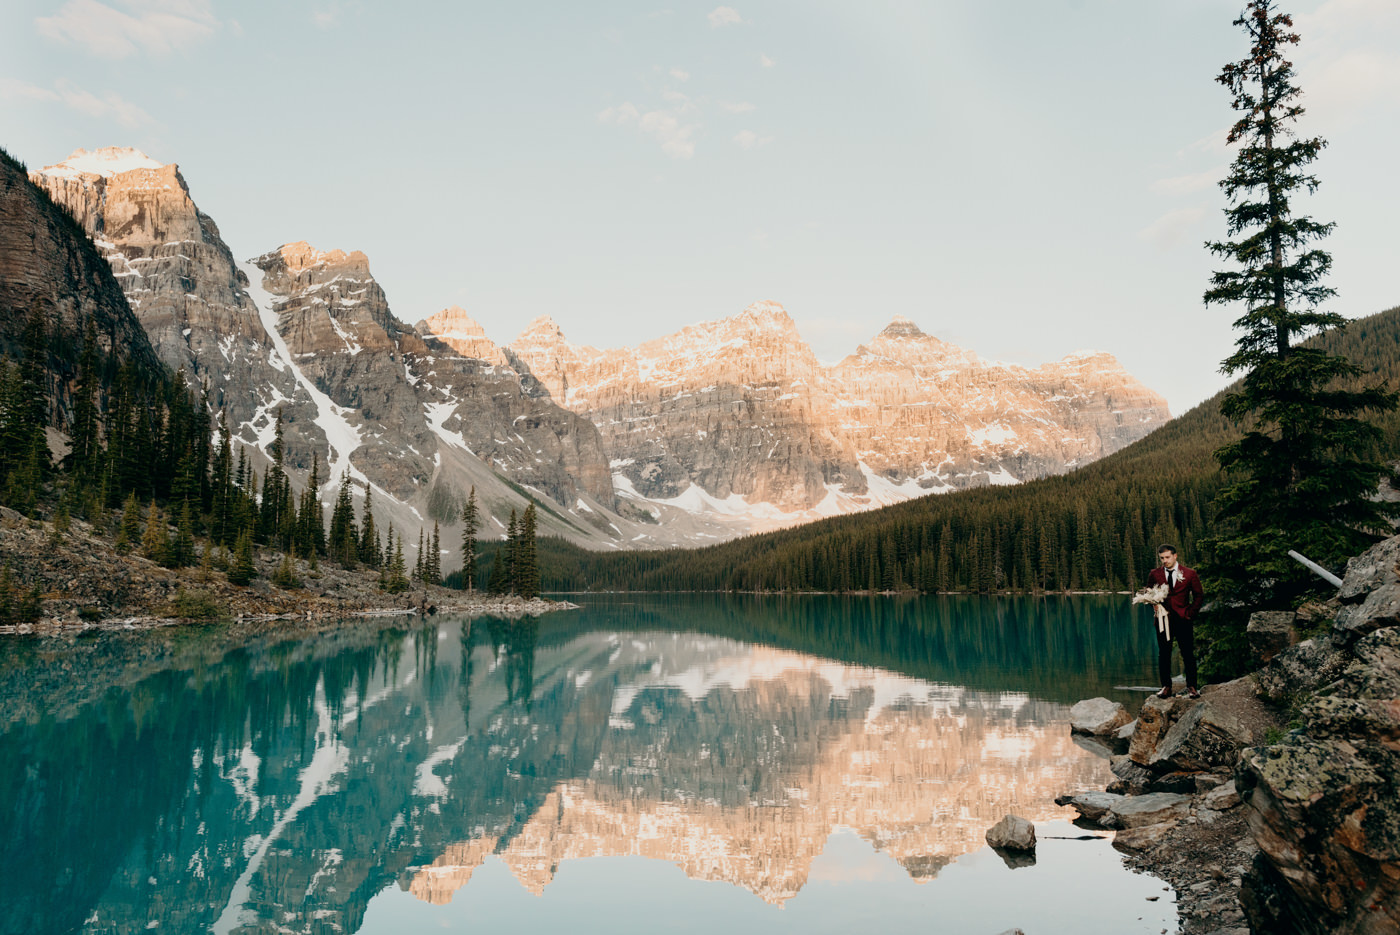 groom holding bouquet at Moraine lake sunrise elopement